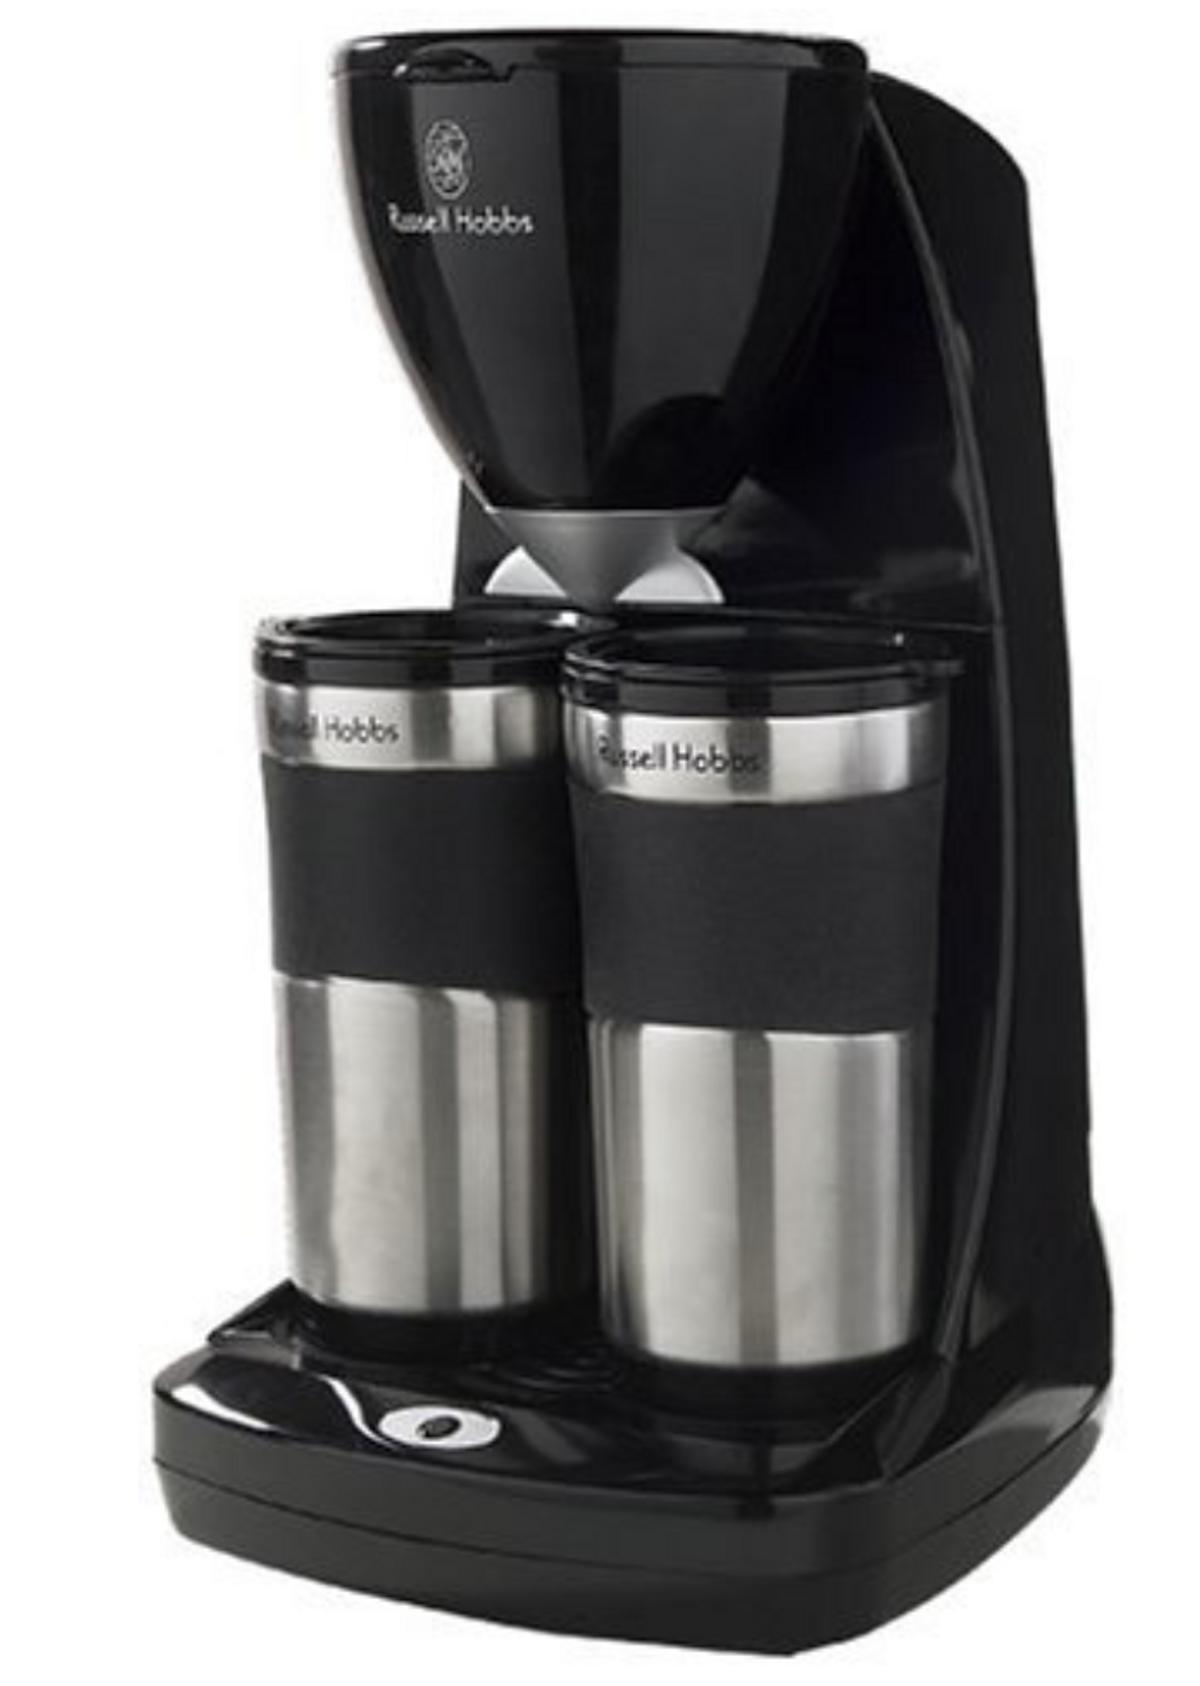 Russell Hobbs Take 2 Coffee Maker No Cups